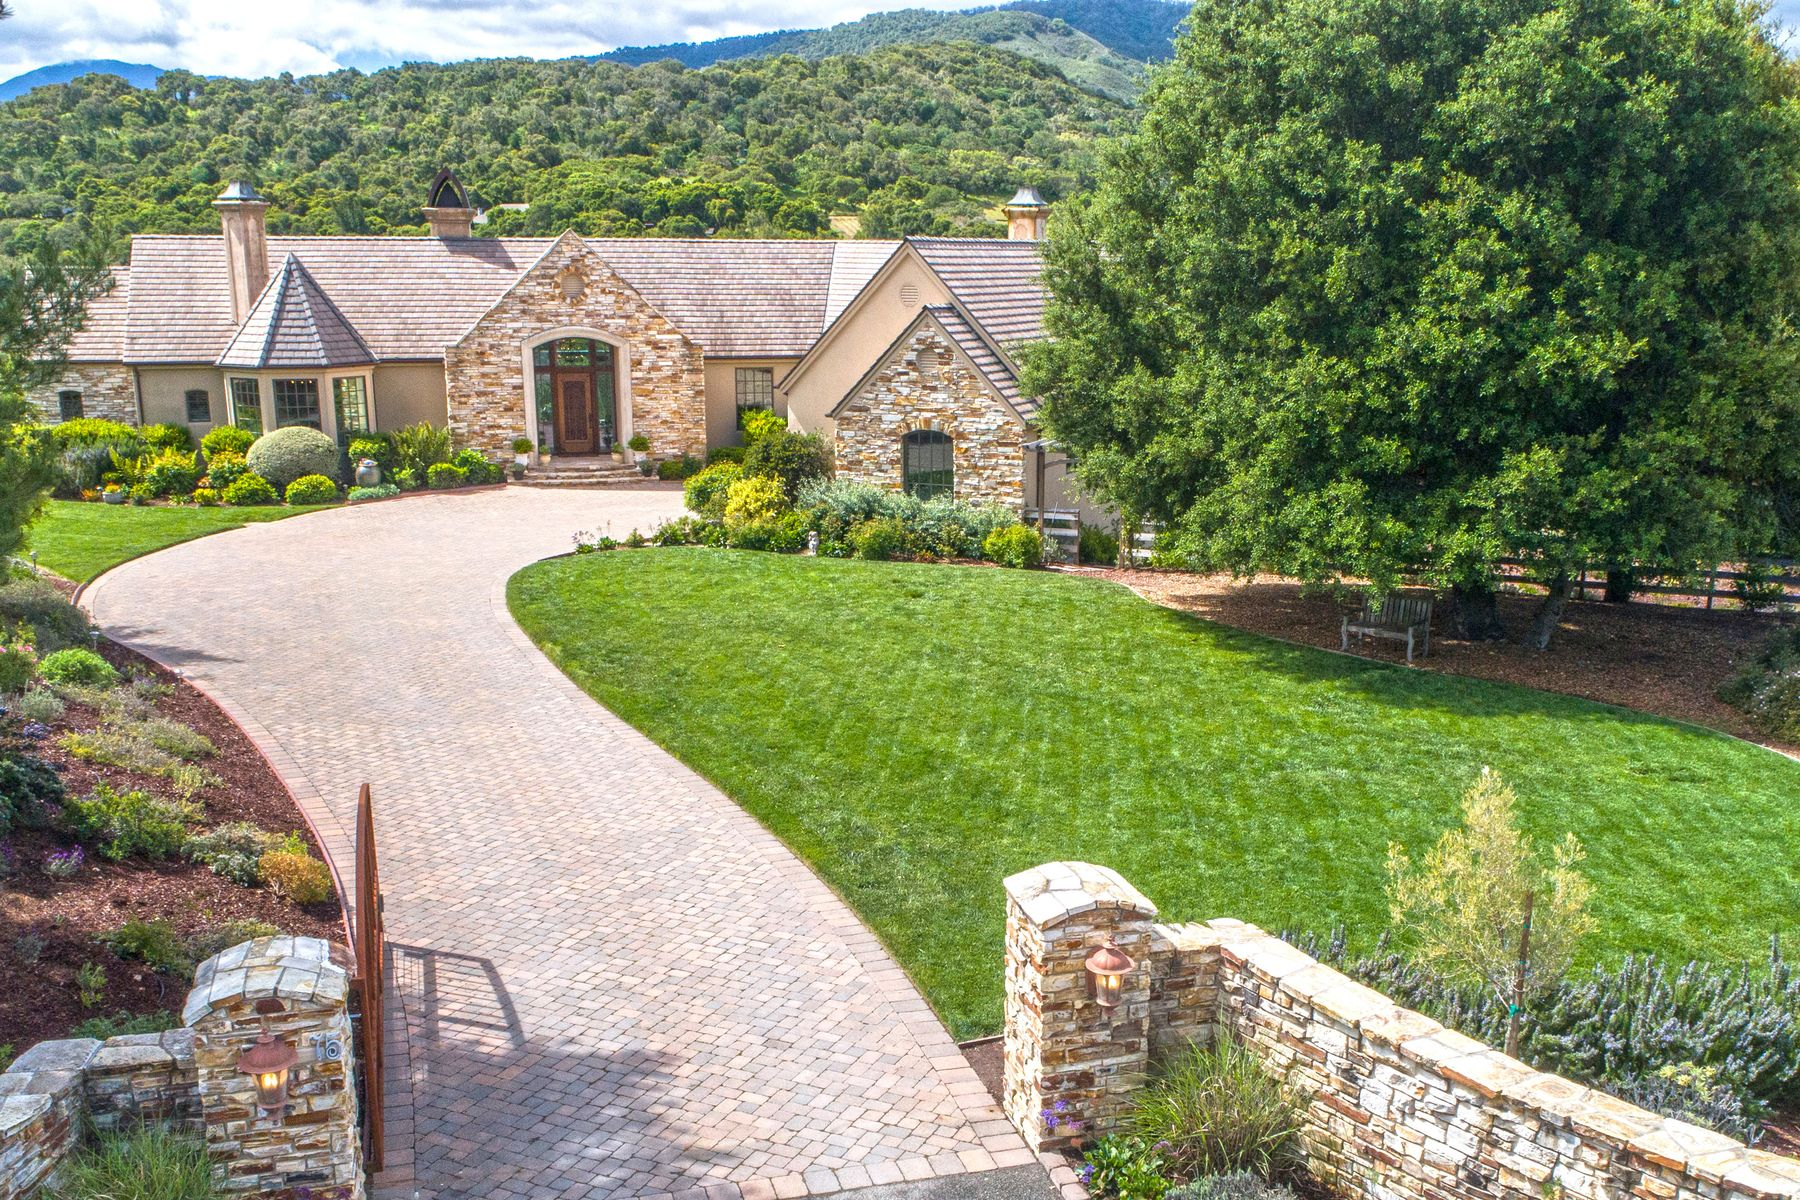 Single Family Homes for Sale at ELEGANT SANCTUARY IN THE VALLEY 75 E Carmel Valley Road Carmel Valley, California 93924 United States